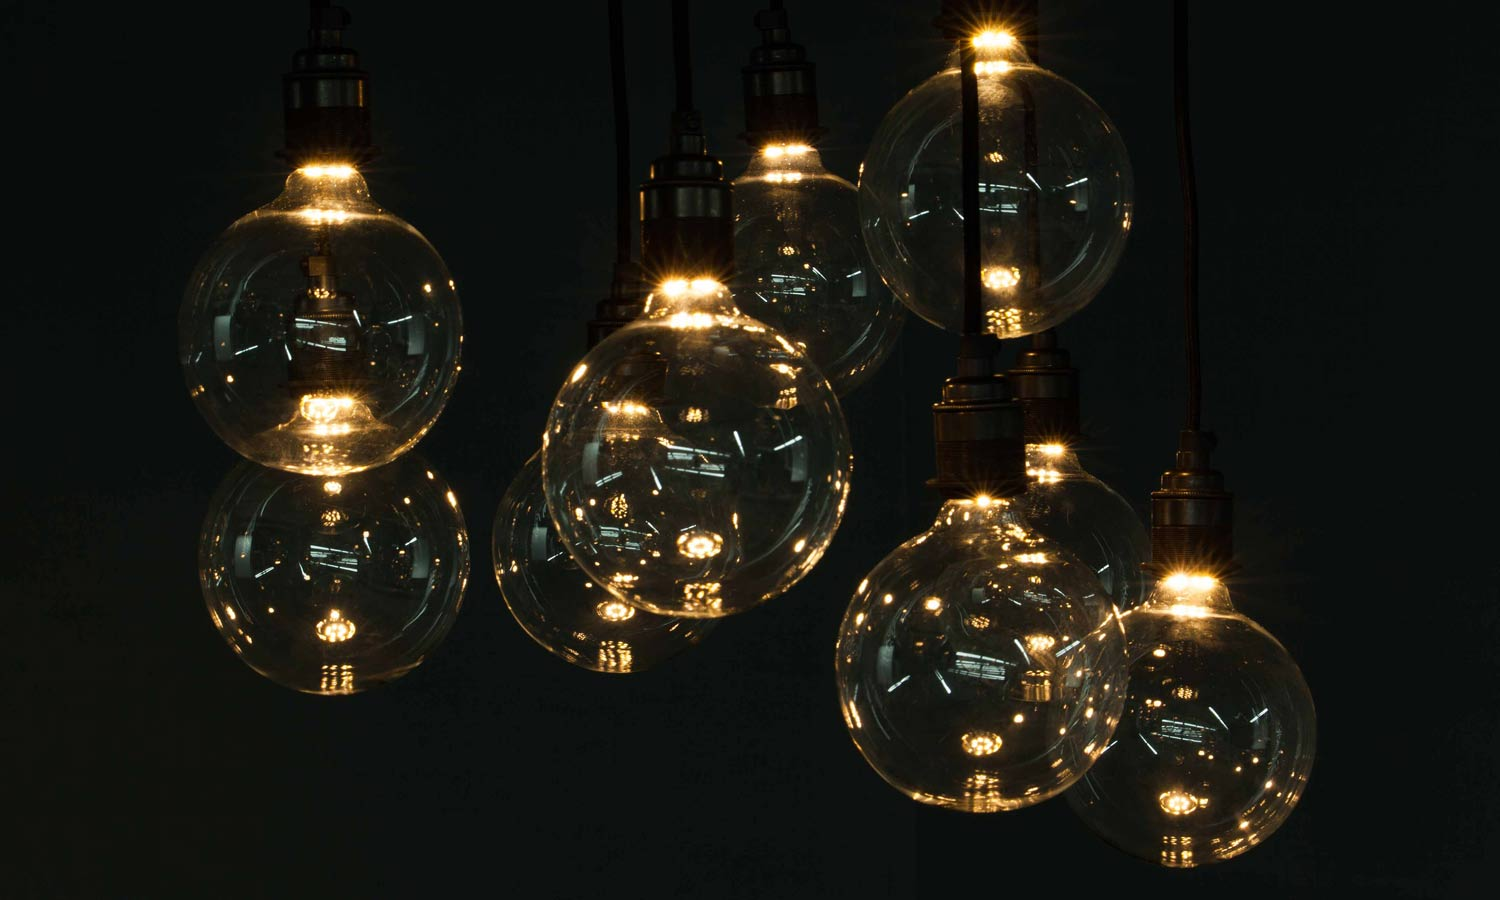 cluster of concealed filament globe bulbs against black background